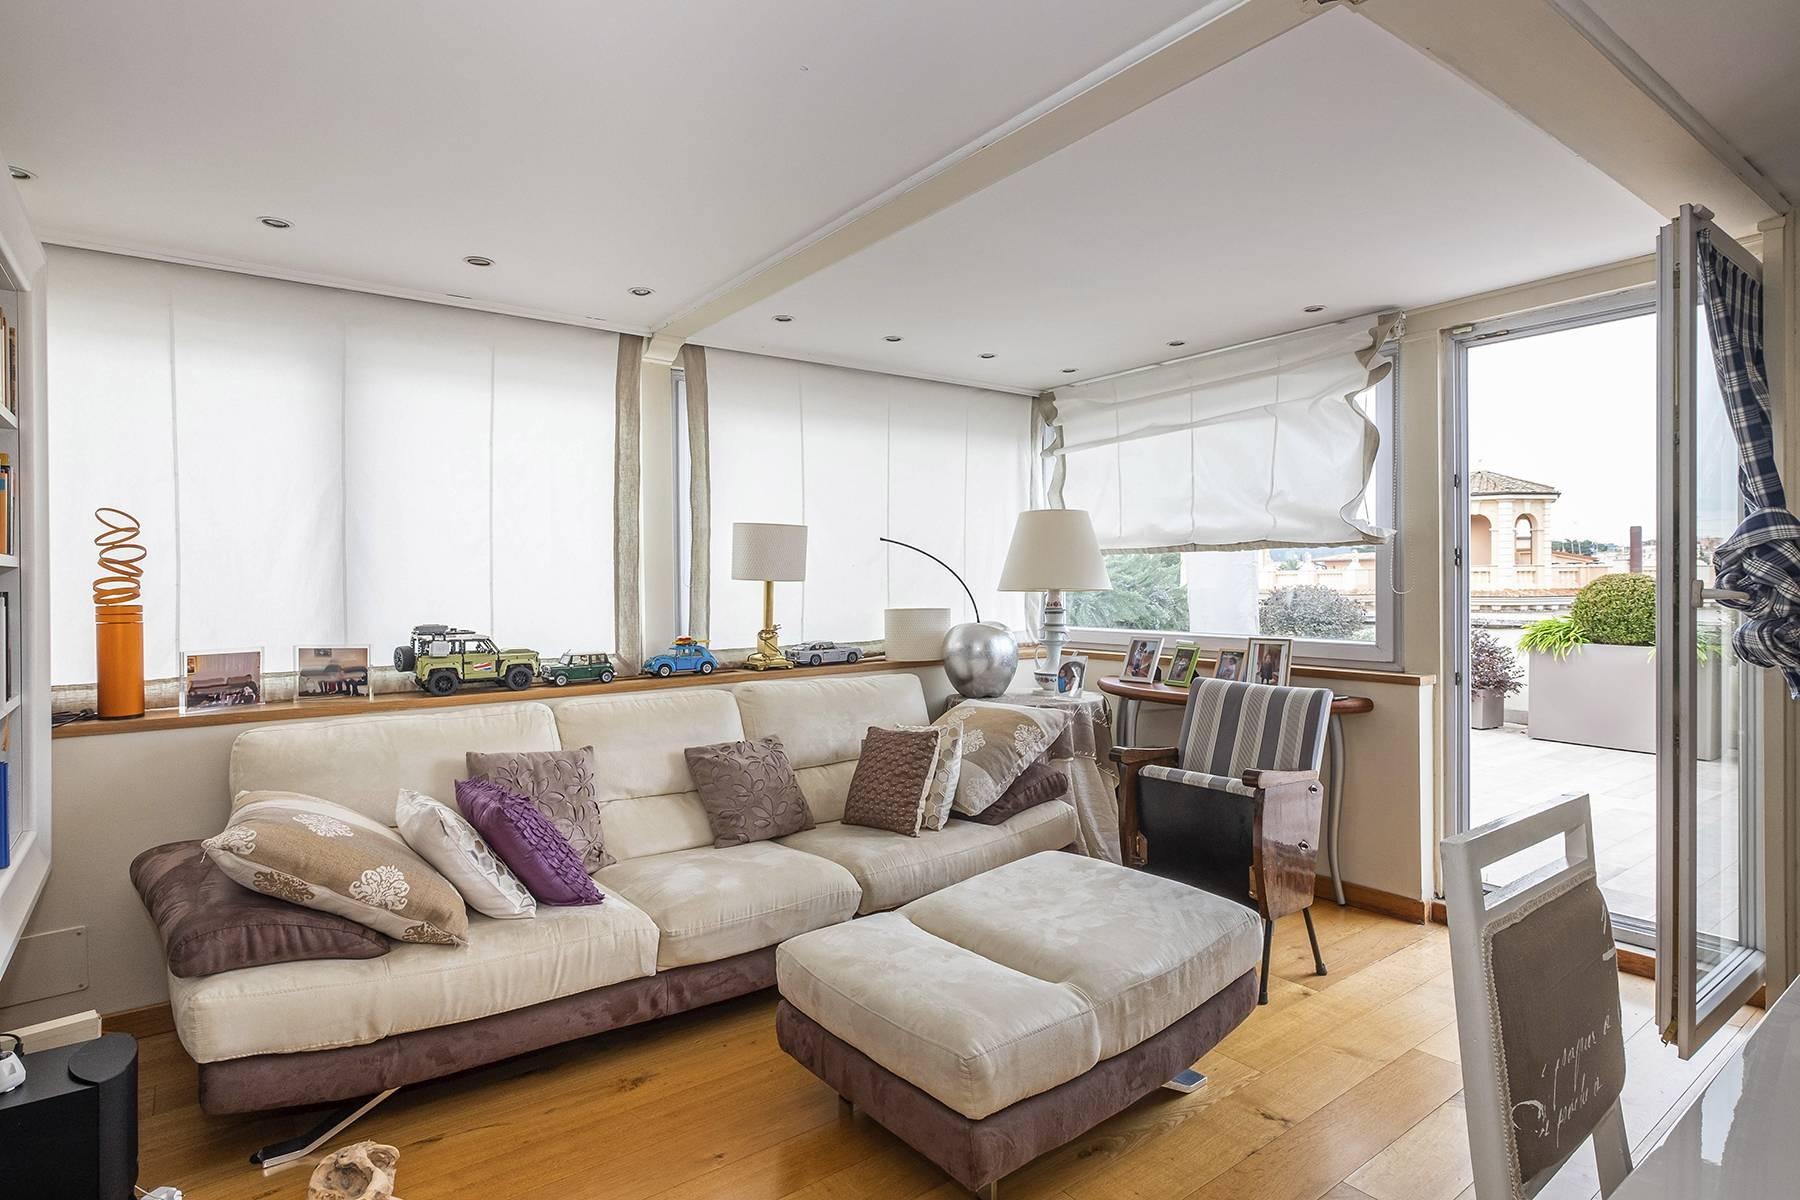 Modern penthouse with stunning 70 sqm terrace a stone's throw from Villa Borghese - 17